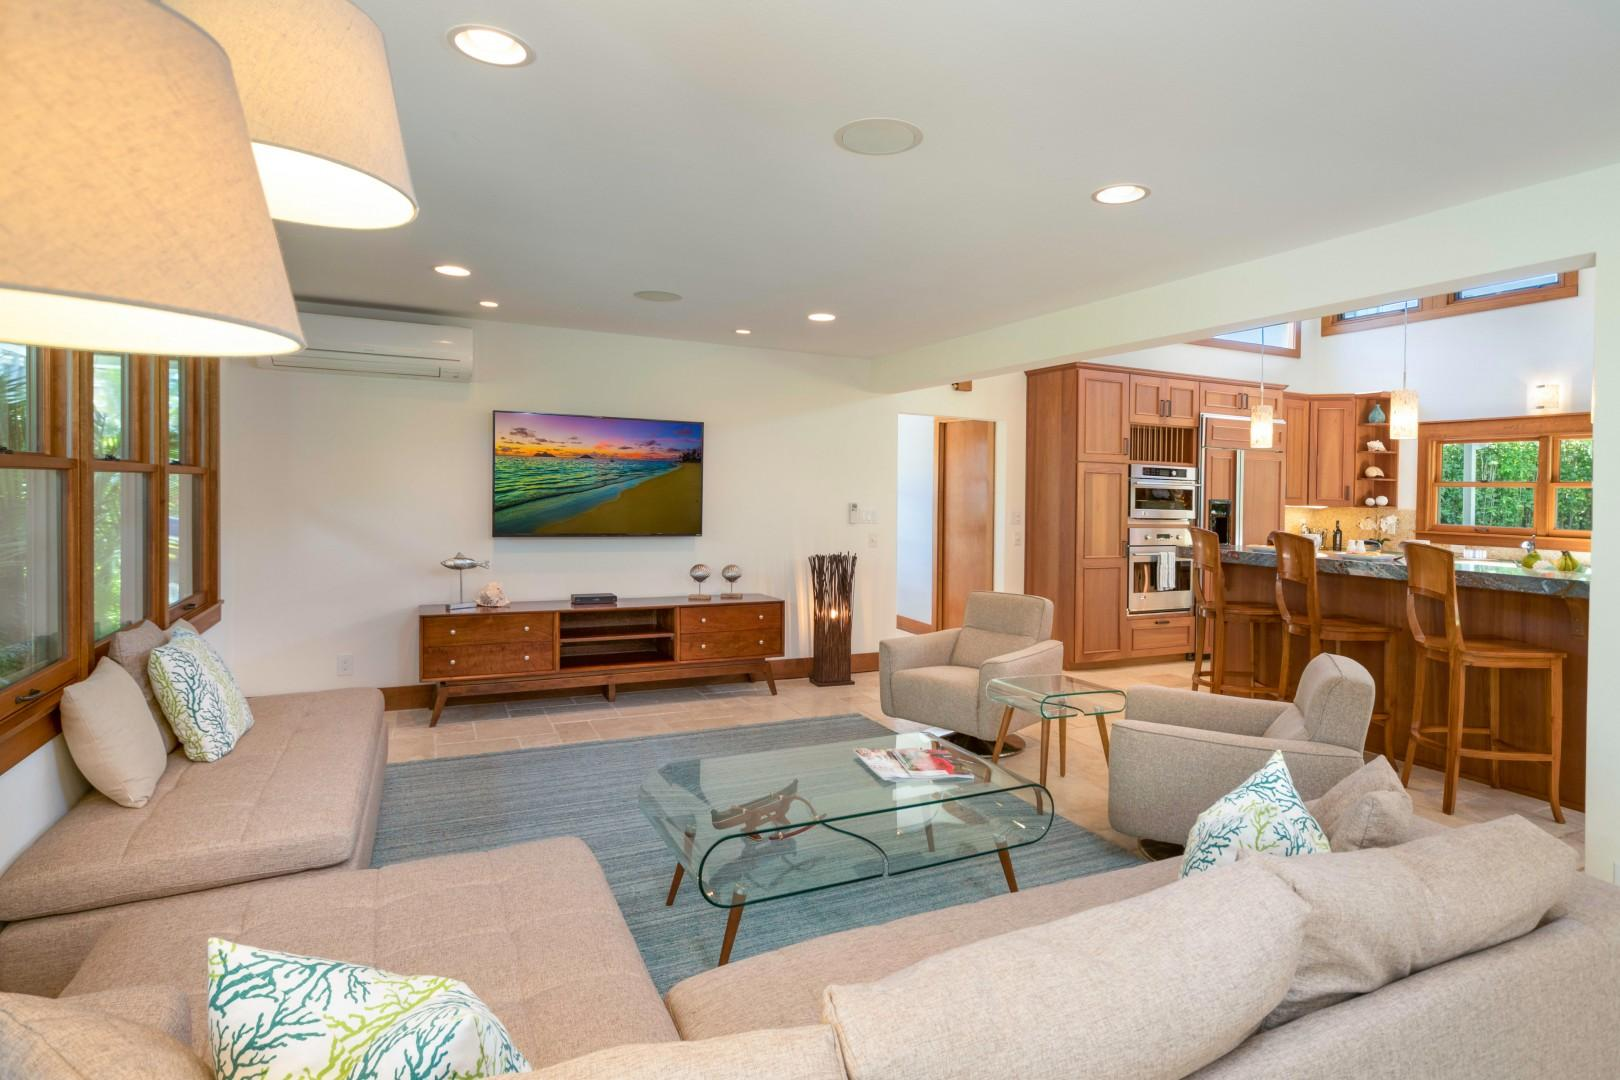 The living room is attached to the kitchen and dining room. With an L-shape couch, there is enough space for everyone to watch a movie or TV.